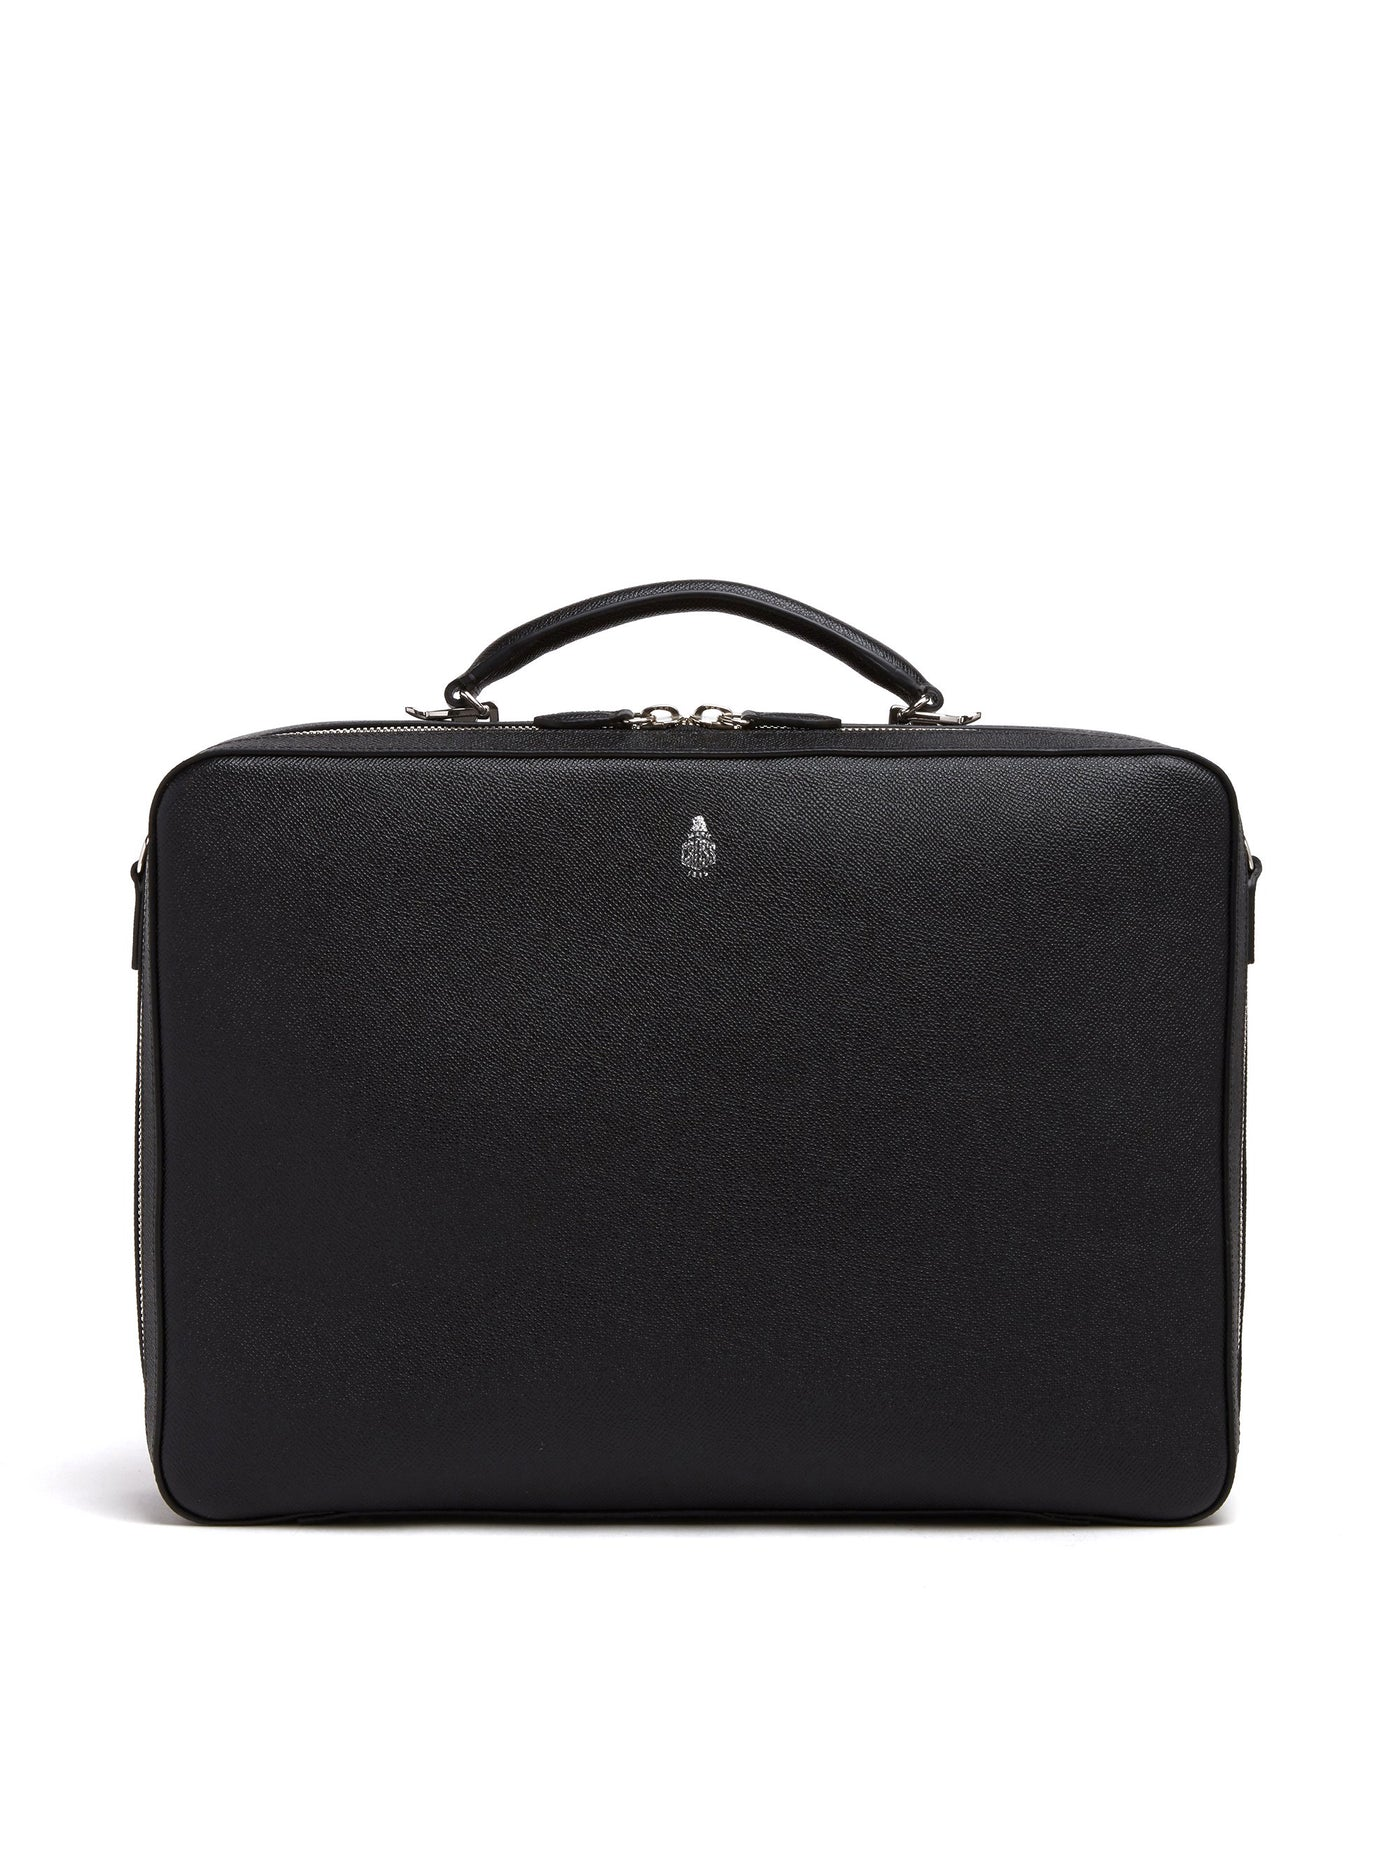 Mark Cross Baker Leather Briefcase Saffiano Black Front